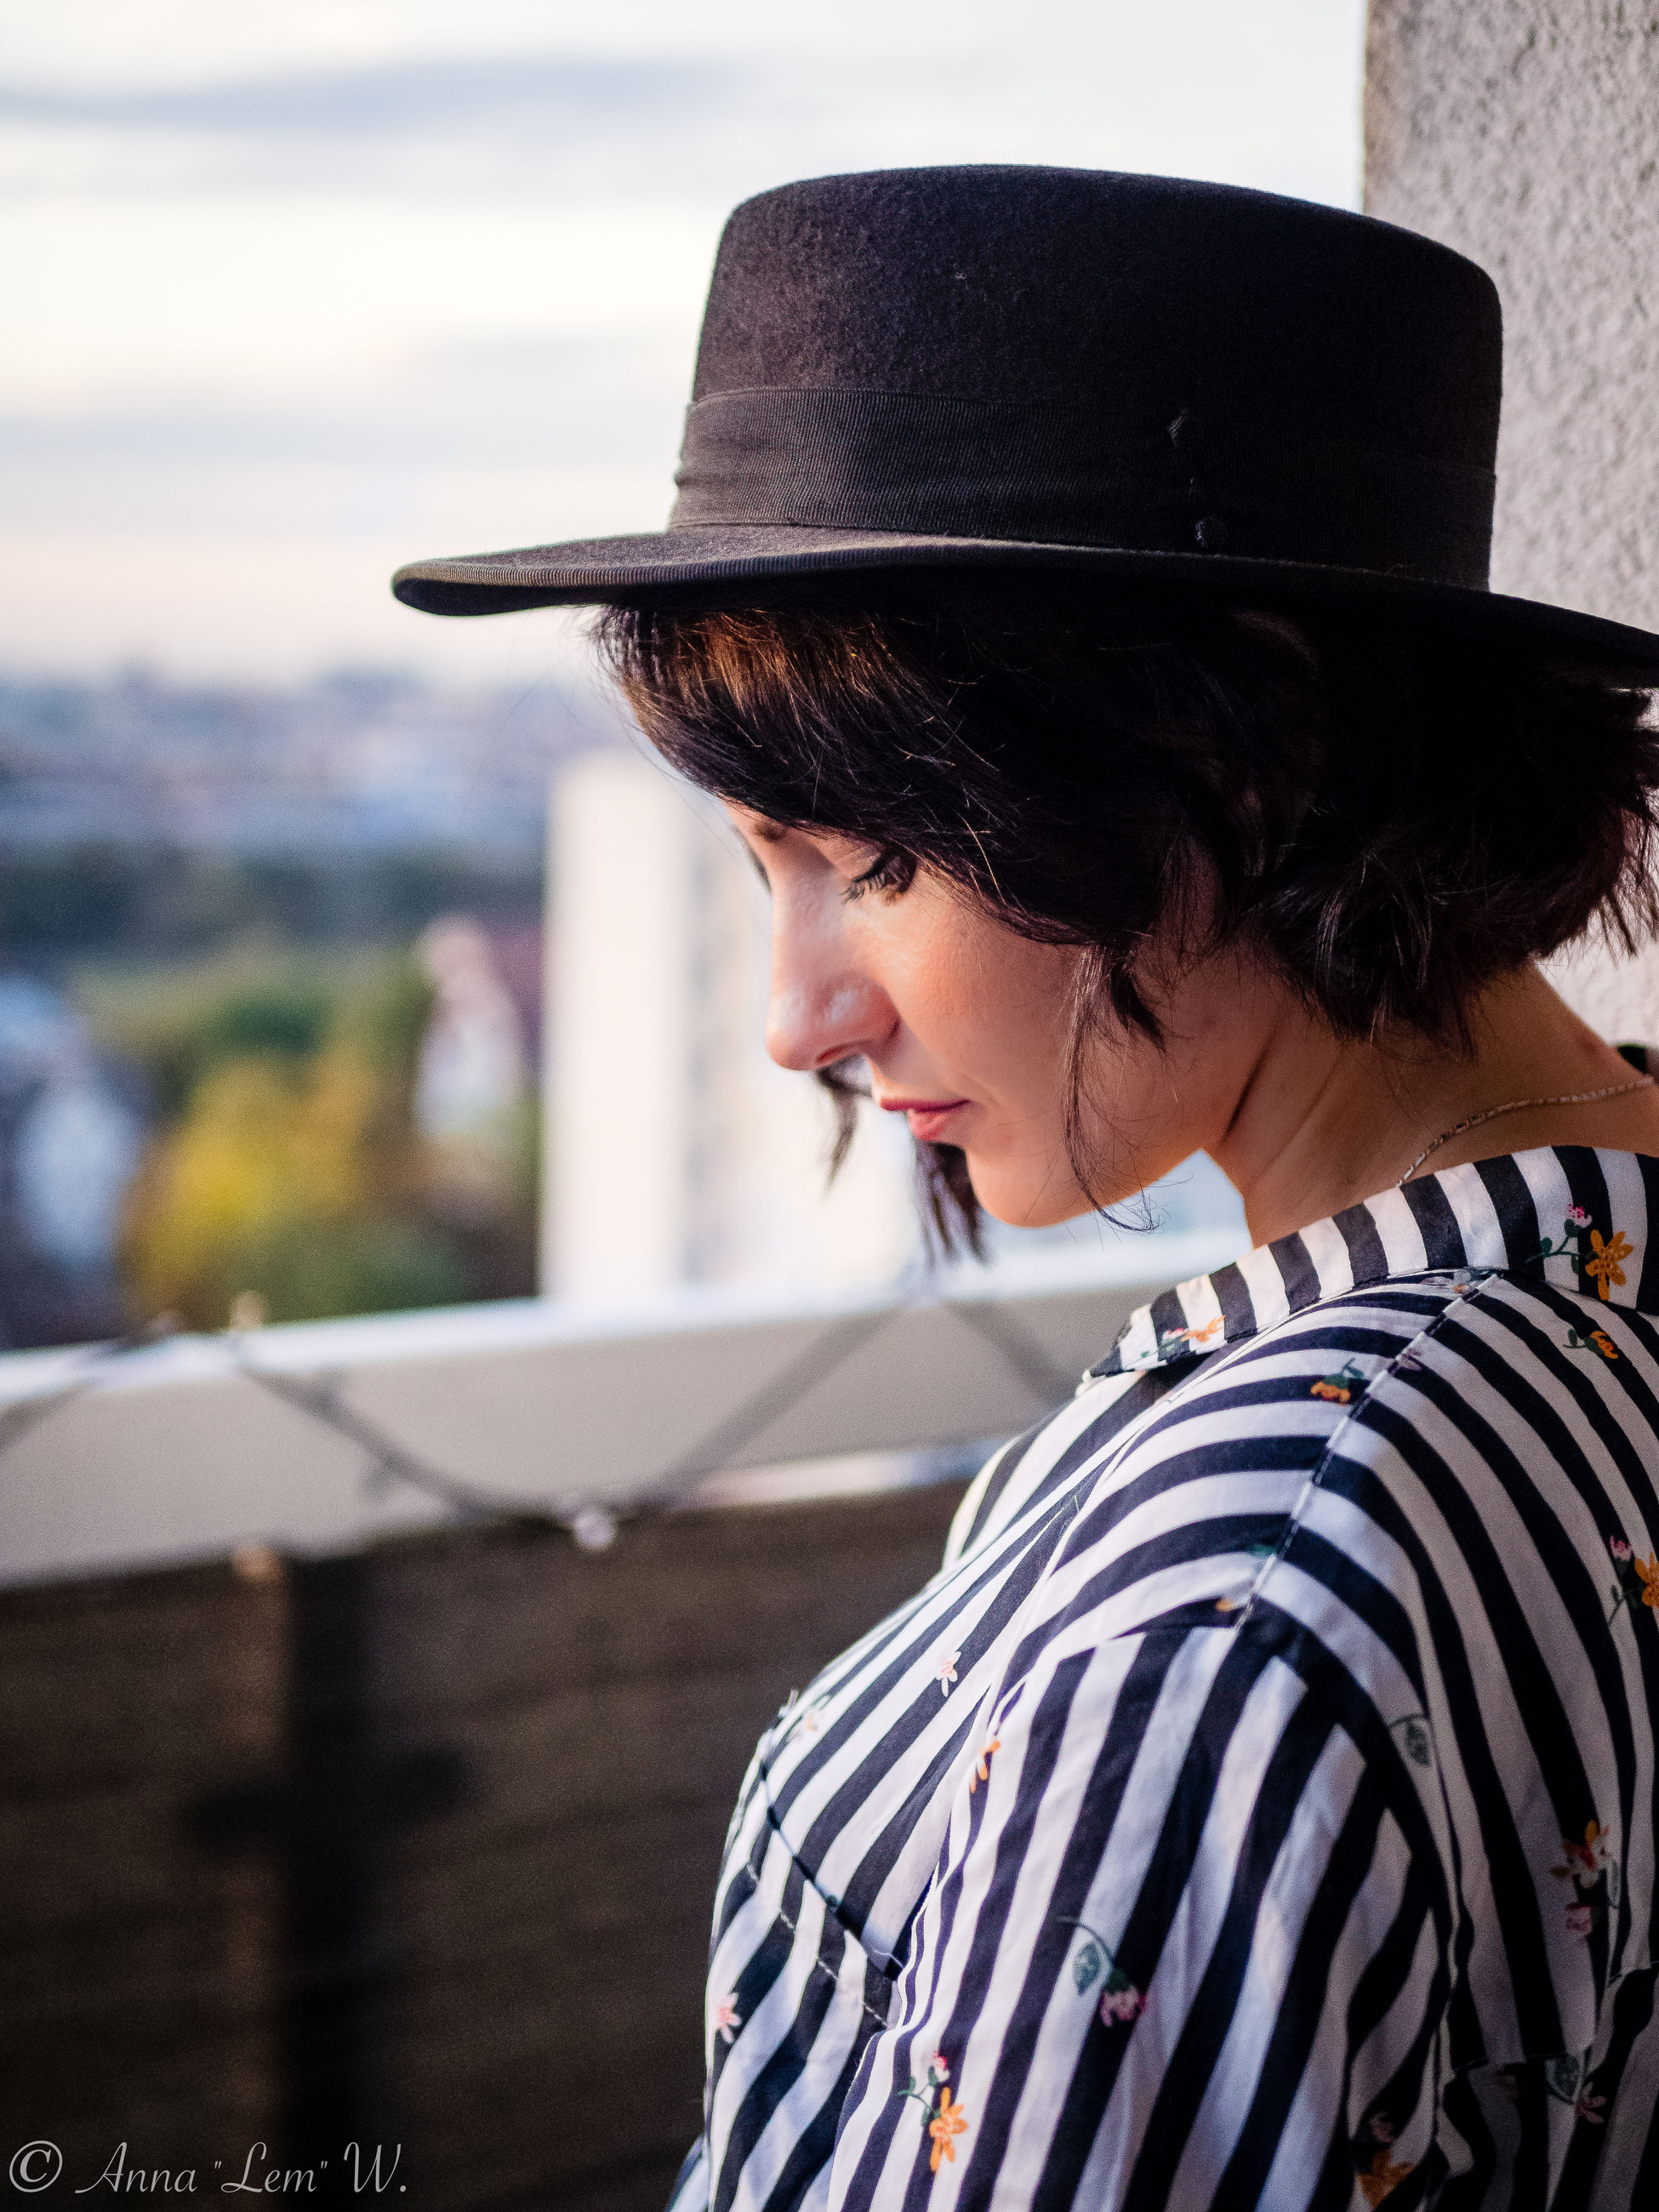 hat, clothing, one person, real people, lifestyles, leisure activity, young adult, young women, adult, women, focus on foreground, portrait, headshot, looking, casual clothing, striped, side view, looking away, day, beautiful woman, hairstyle